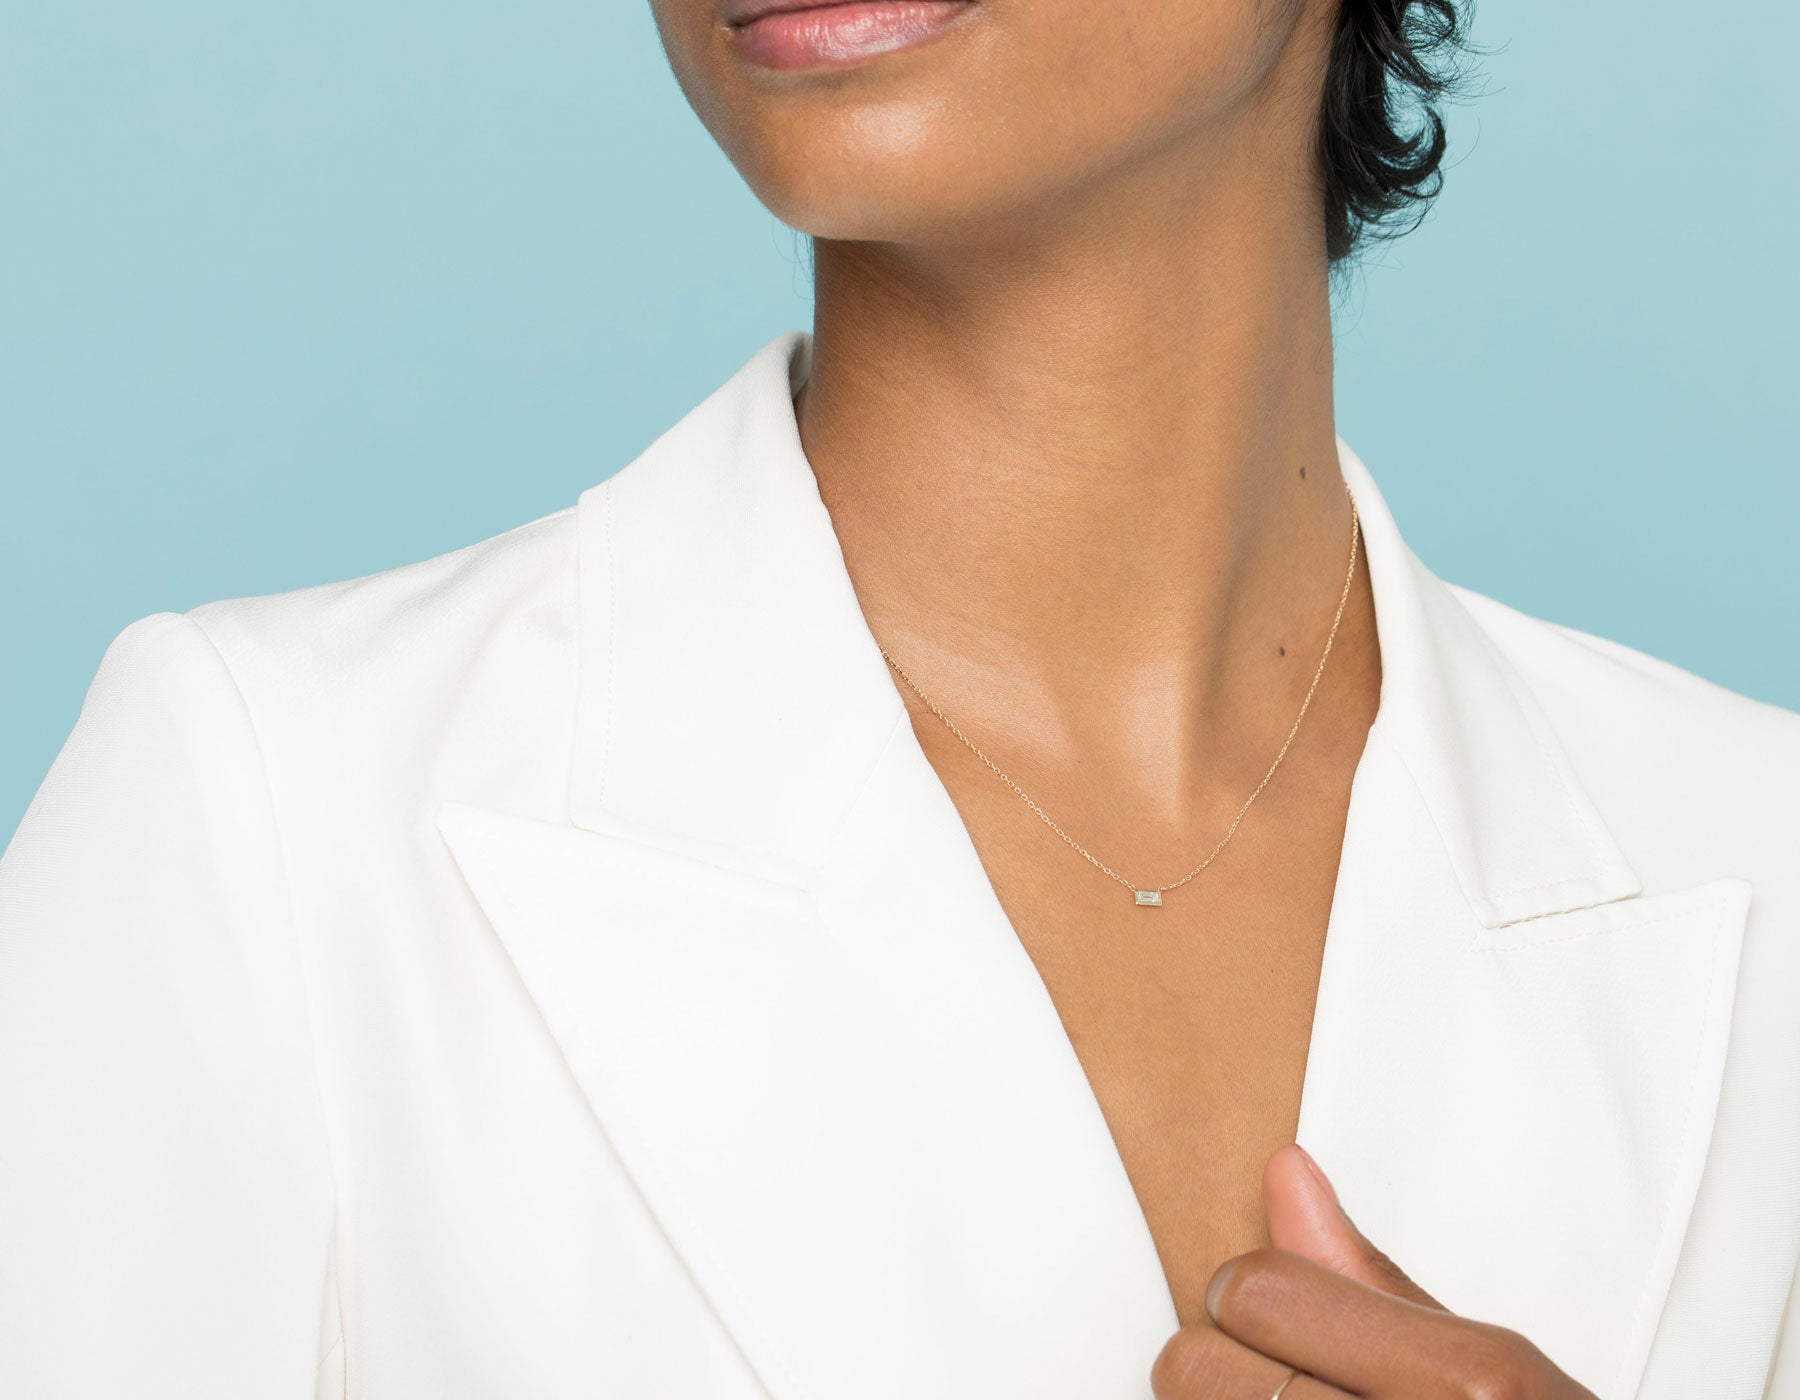 Model wearing dainty minimalist Baguette Diamond Bezel Necklace by Vrai, 14K White Gold